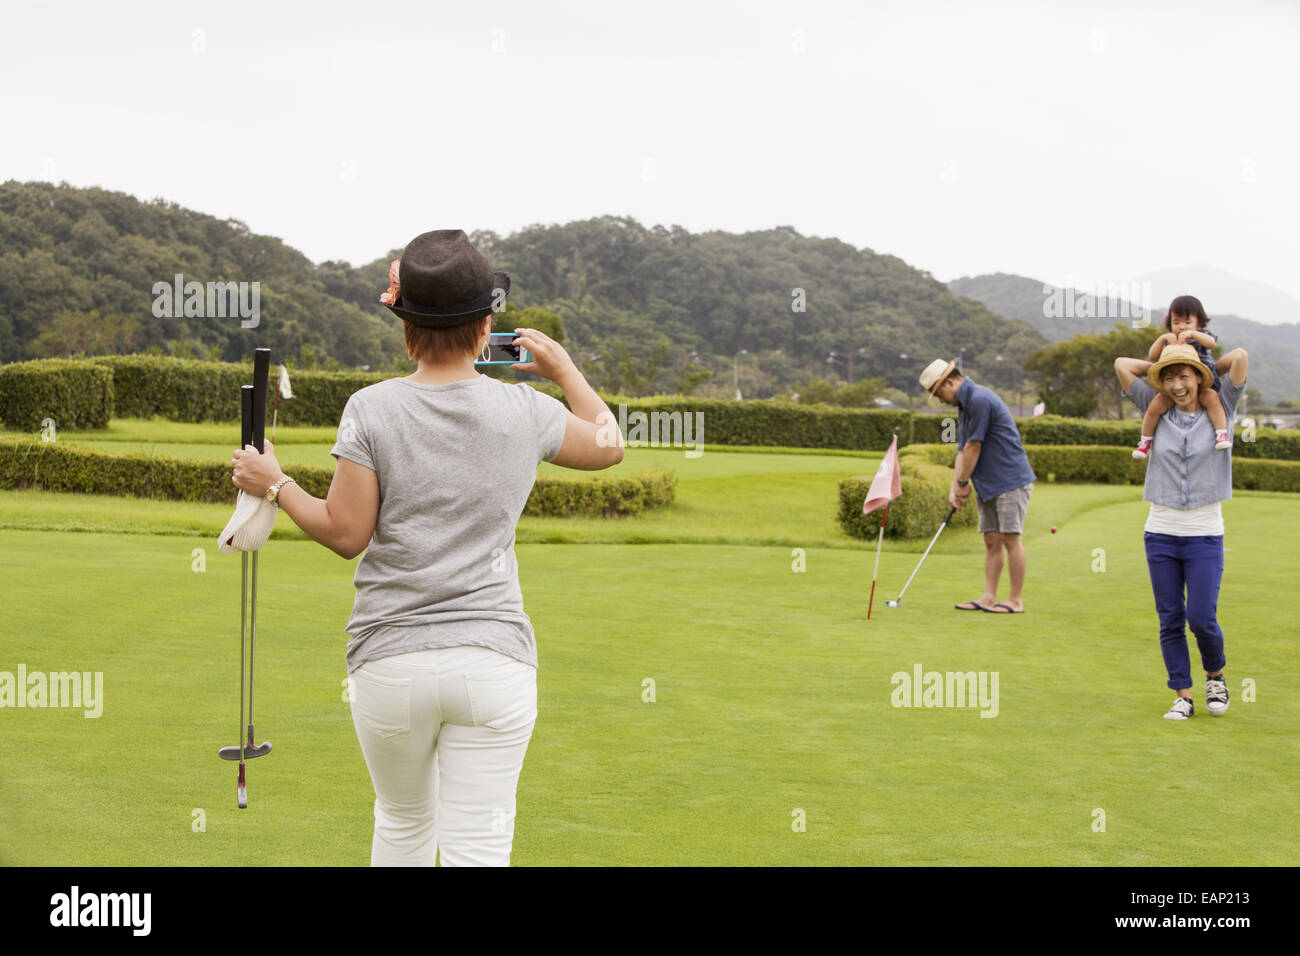 Family on a golf course.A child and three adults. a woman with a camera. - Stock Image